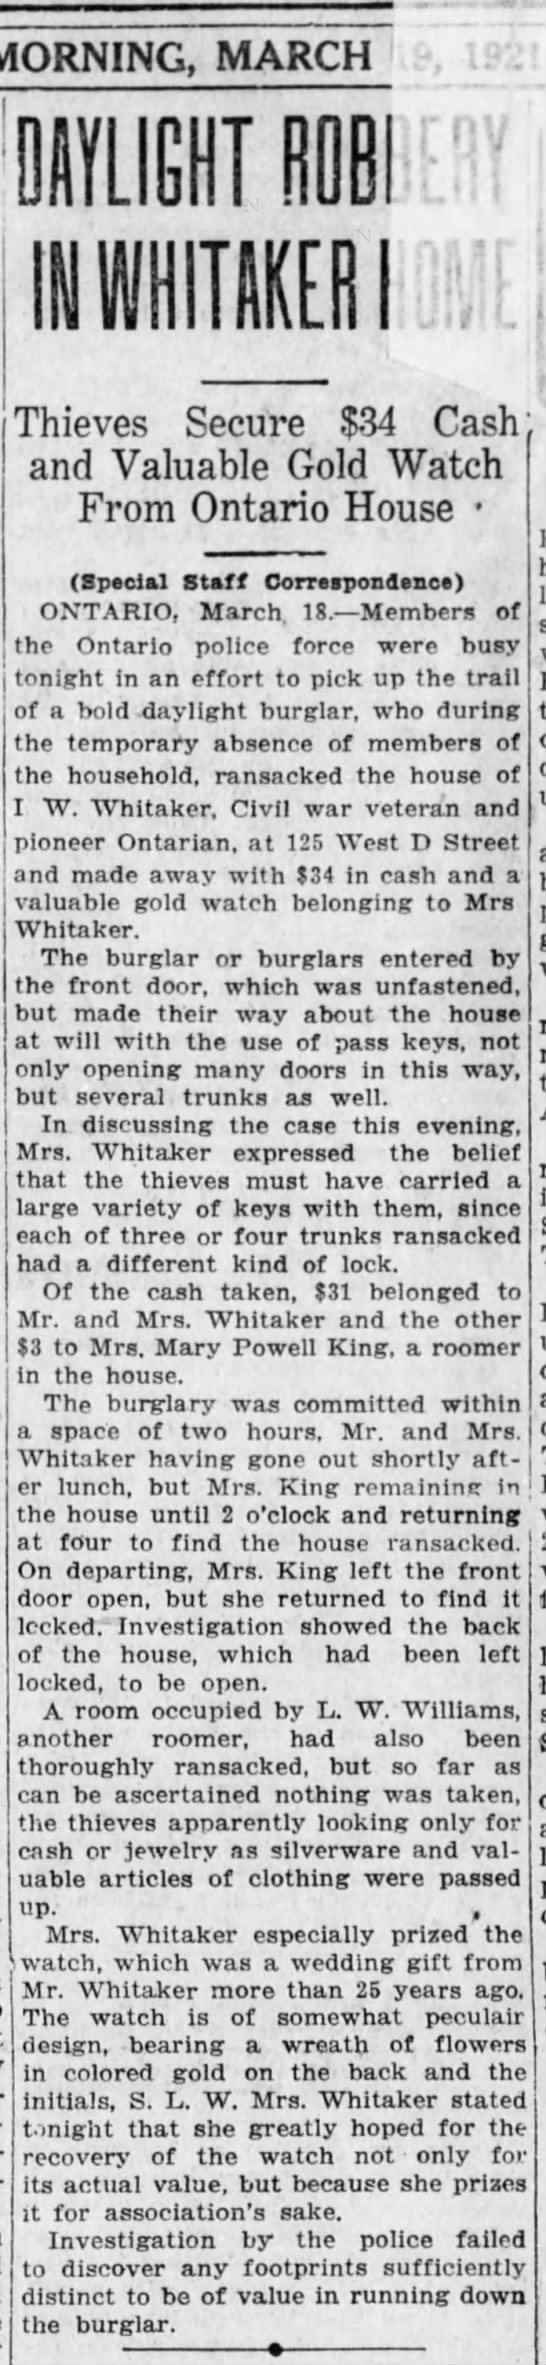 1921-03-19 WHITAKER WILLIAM HOUSE ROBBED -